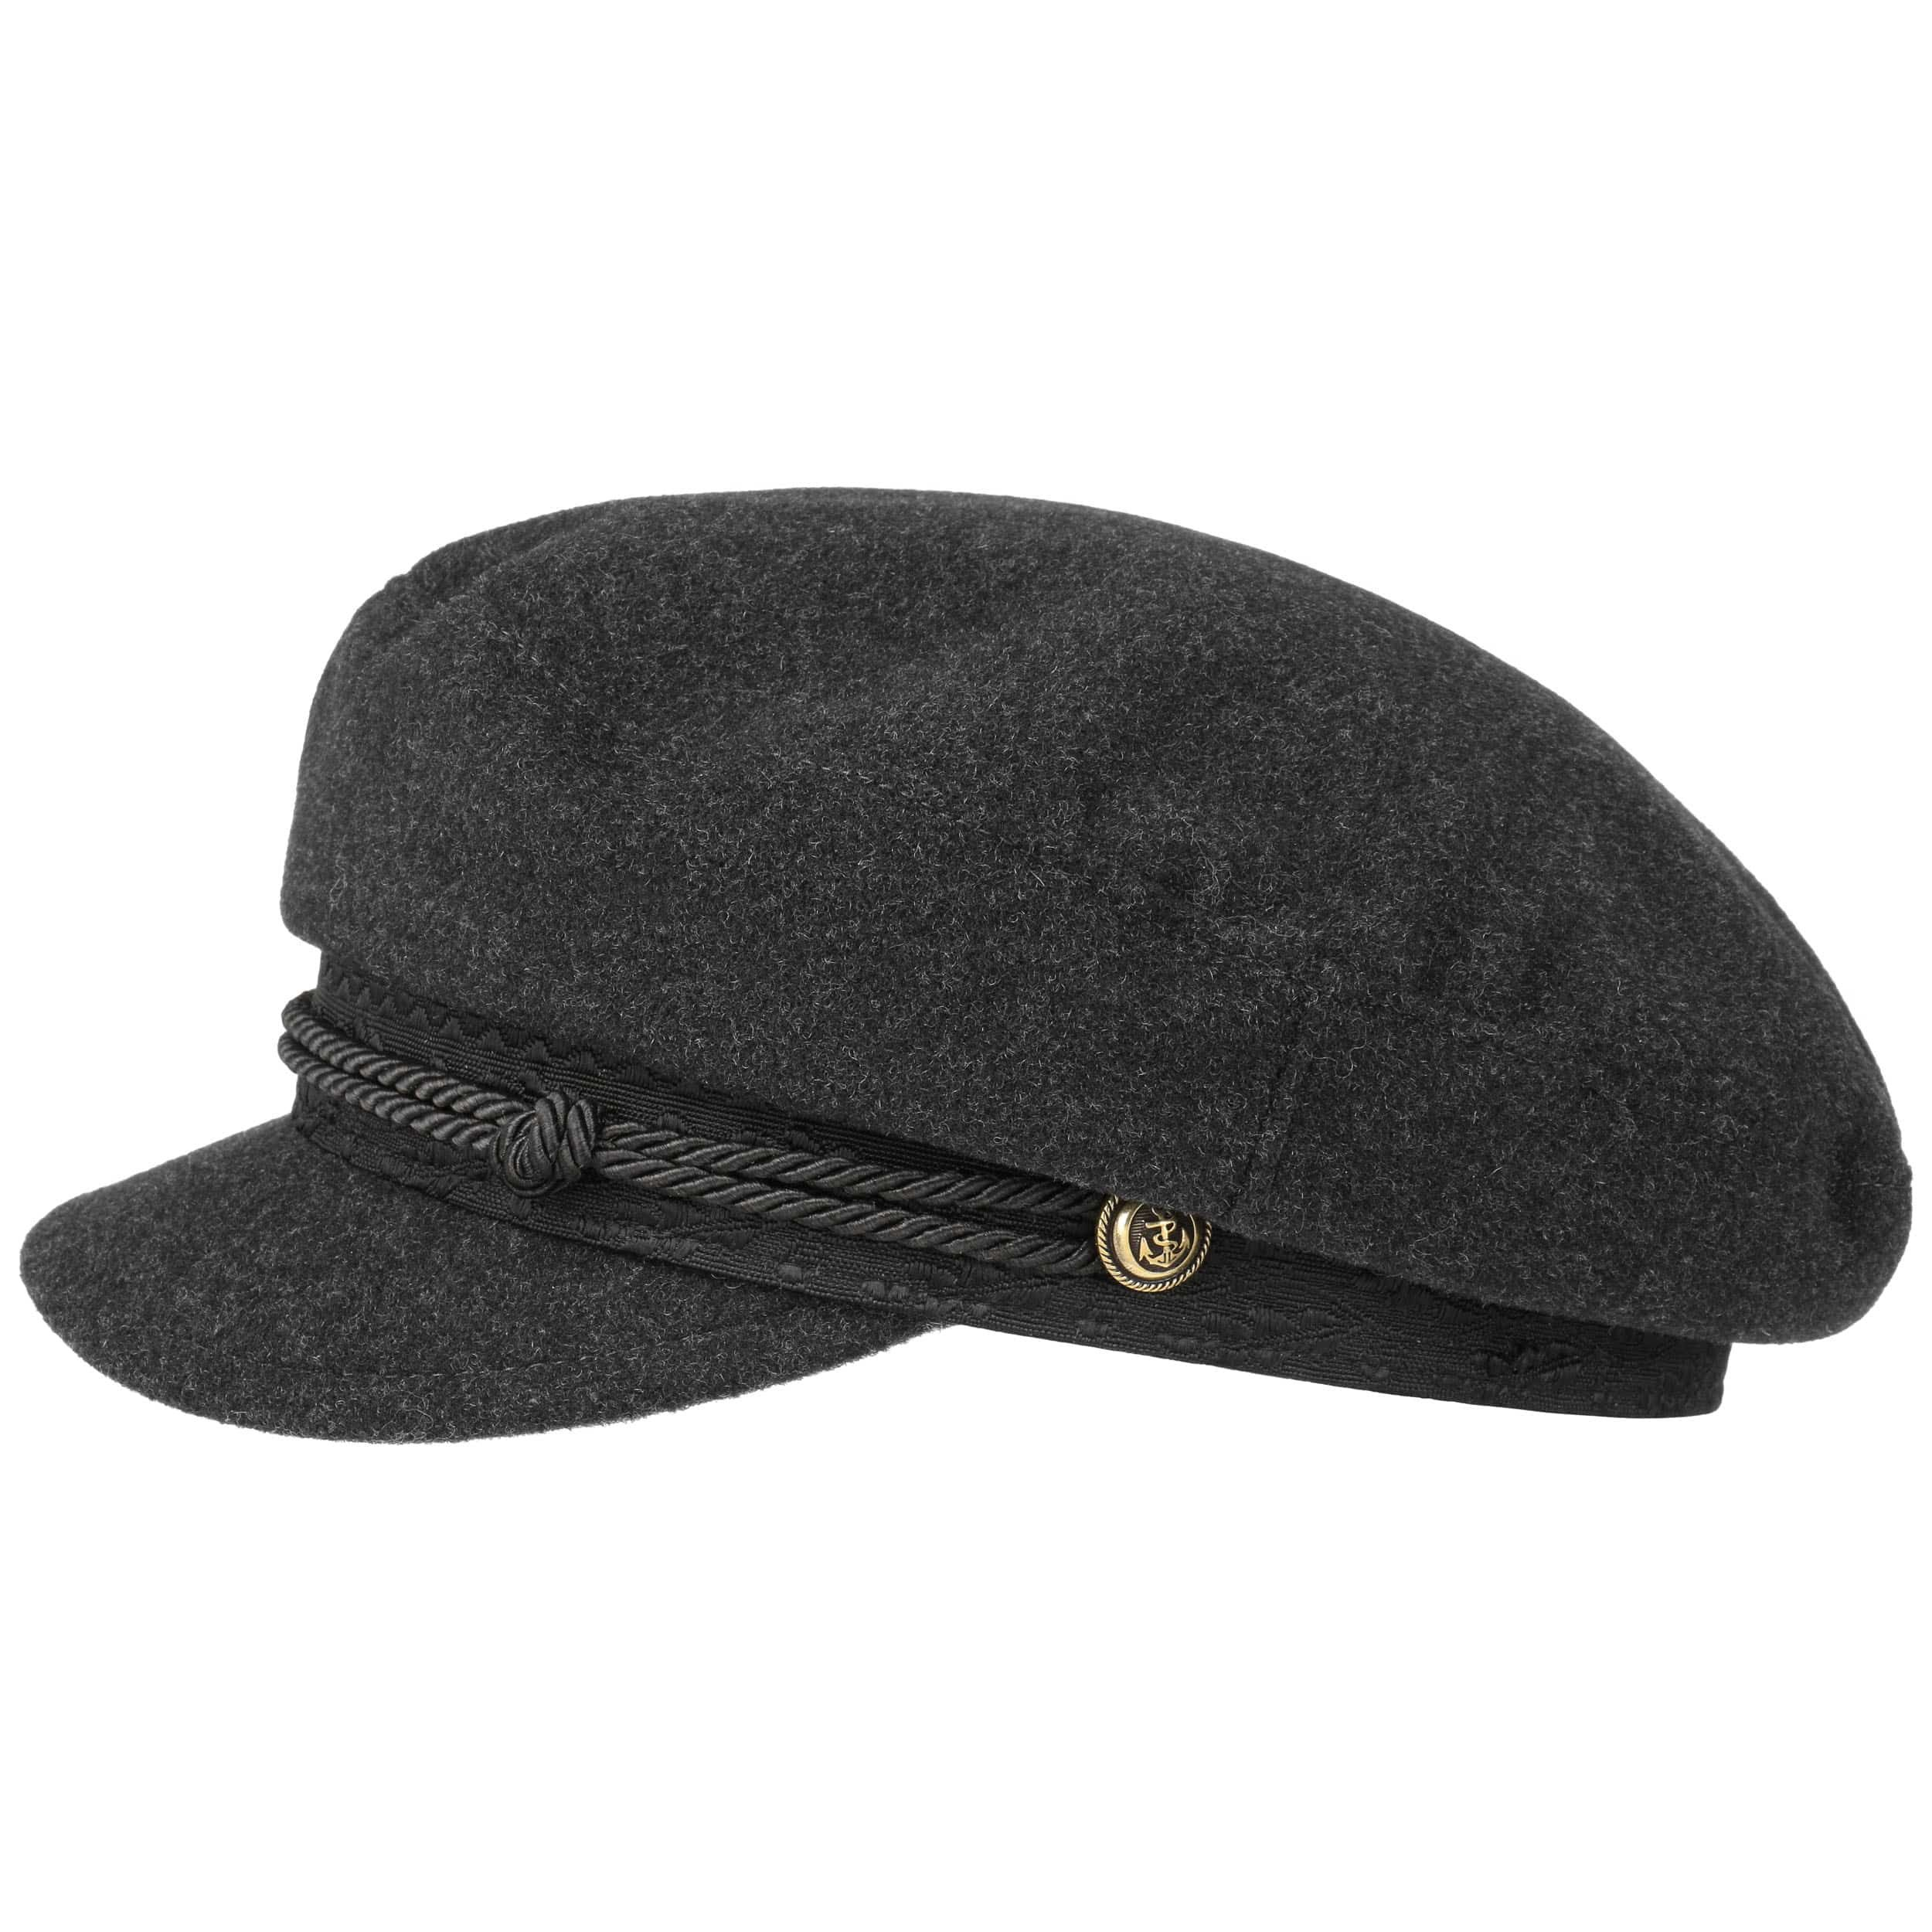 low cost fresh styles outlet store sale Wool Cashmere Riders Cap grau